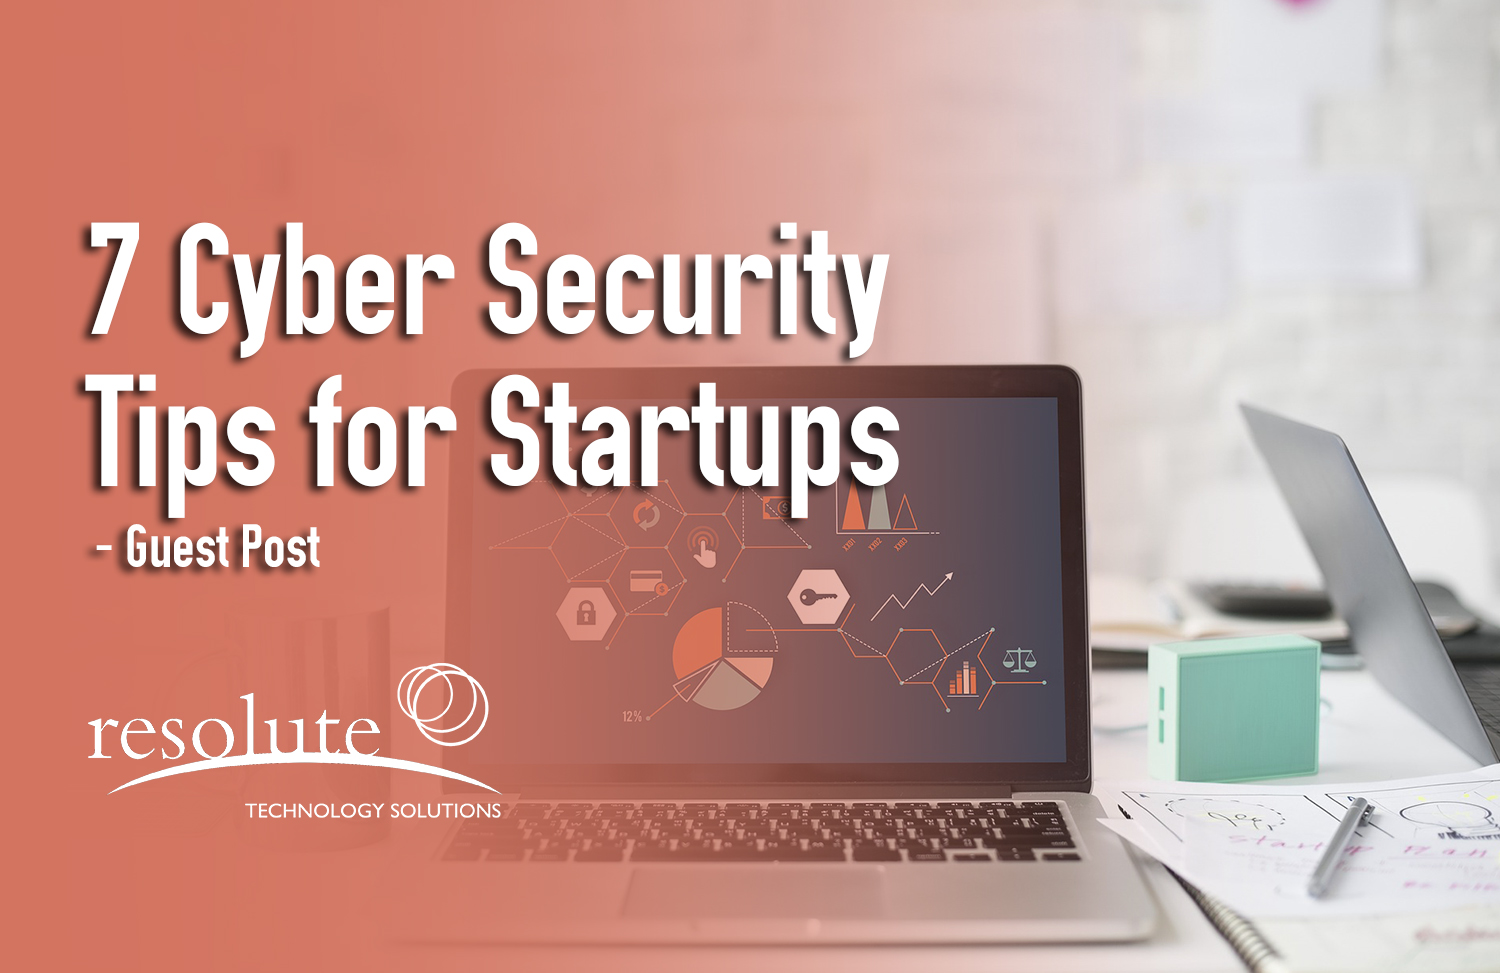 7 Cyber Security Tips for Startups